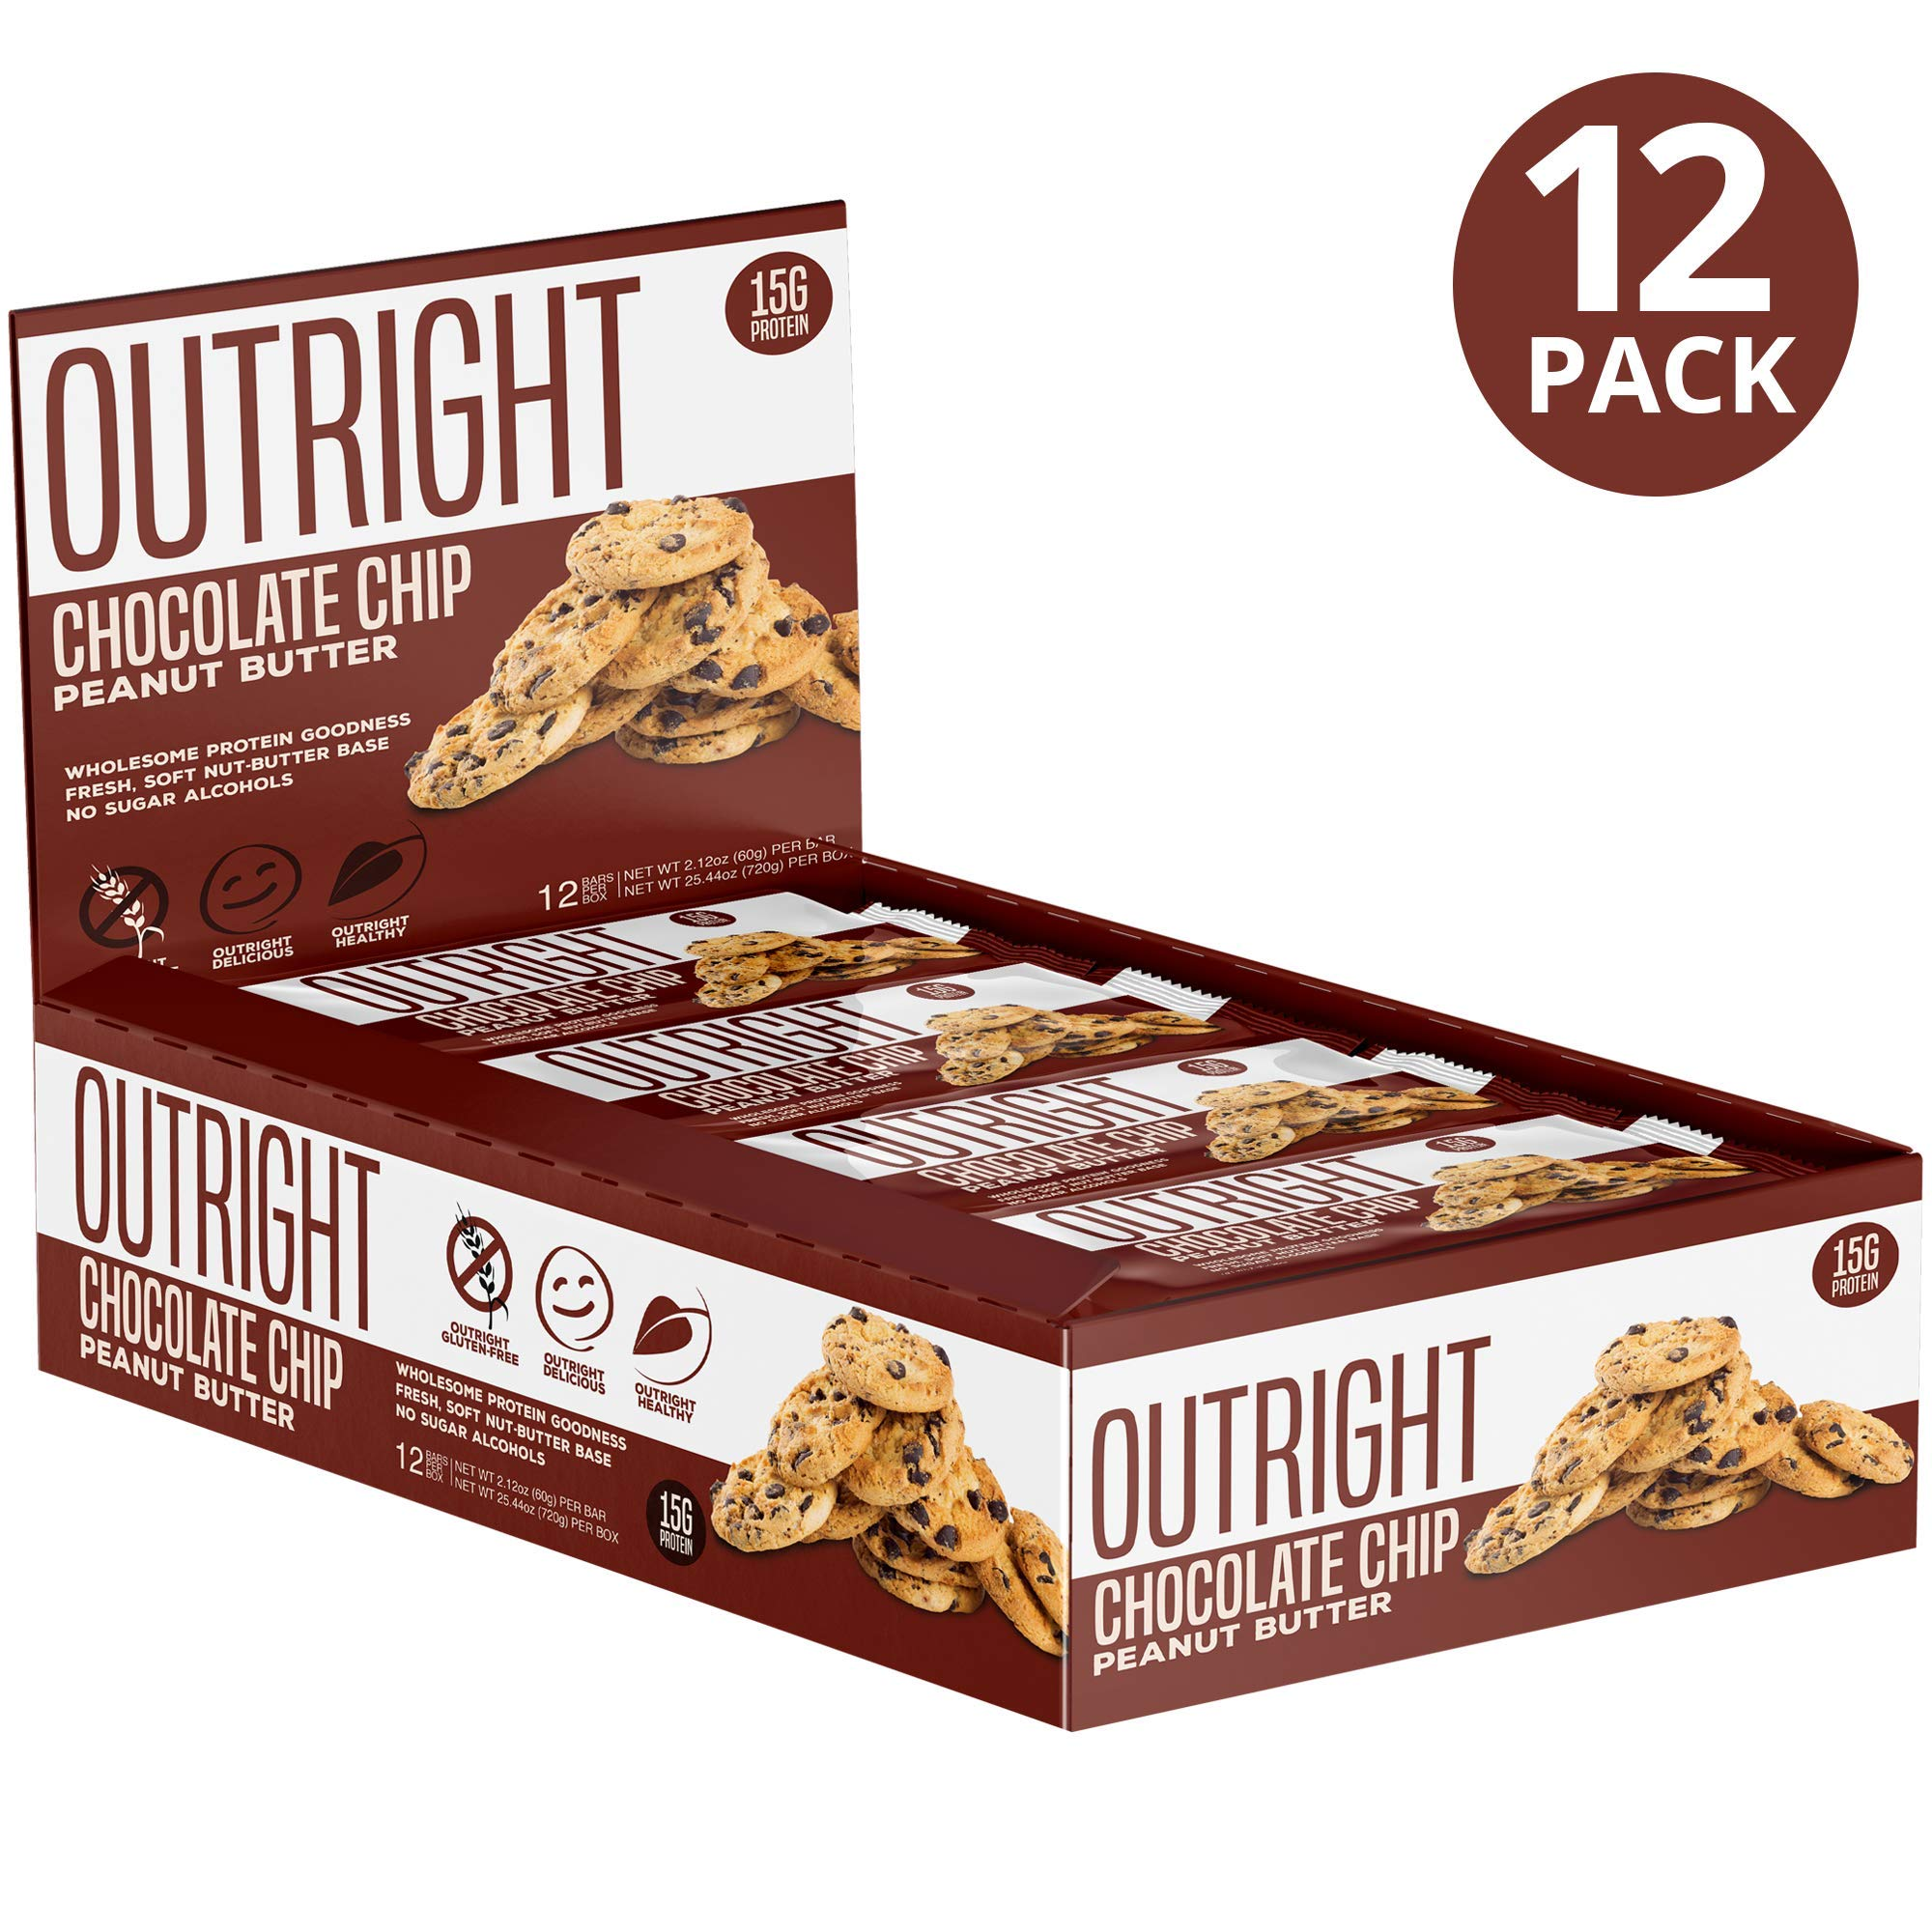 Outright Bar - Whole Food Protein Bar - 12 Pack - MTS Nutrition - Peanut Butter Chocolate Chip by MTS Nutrition